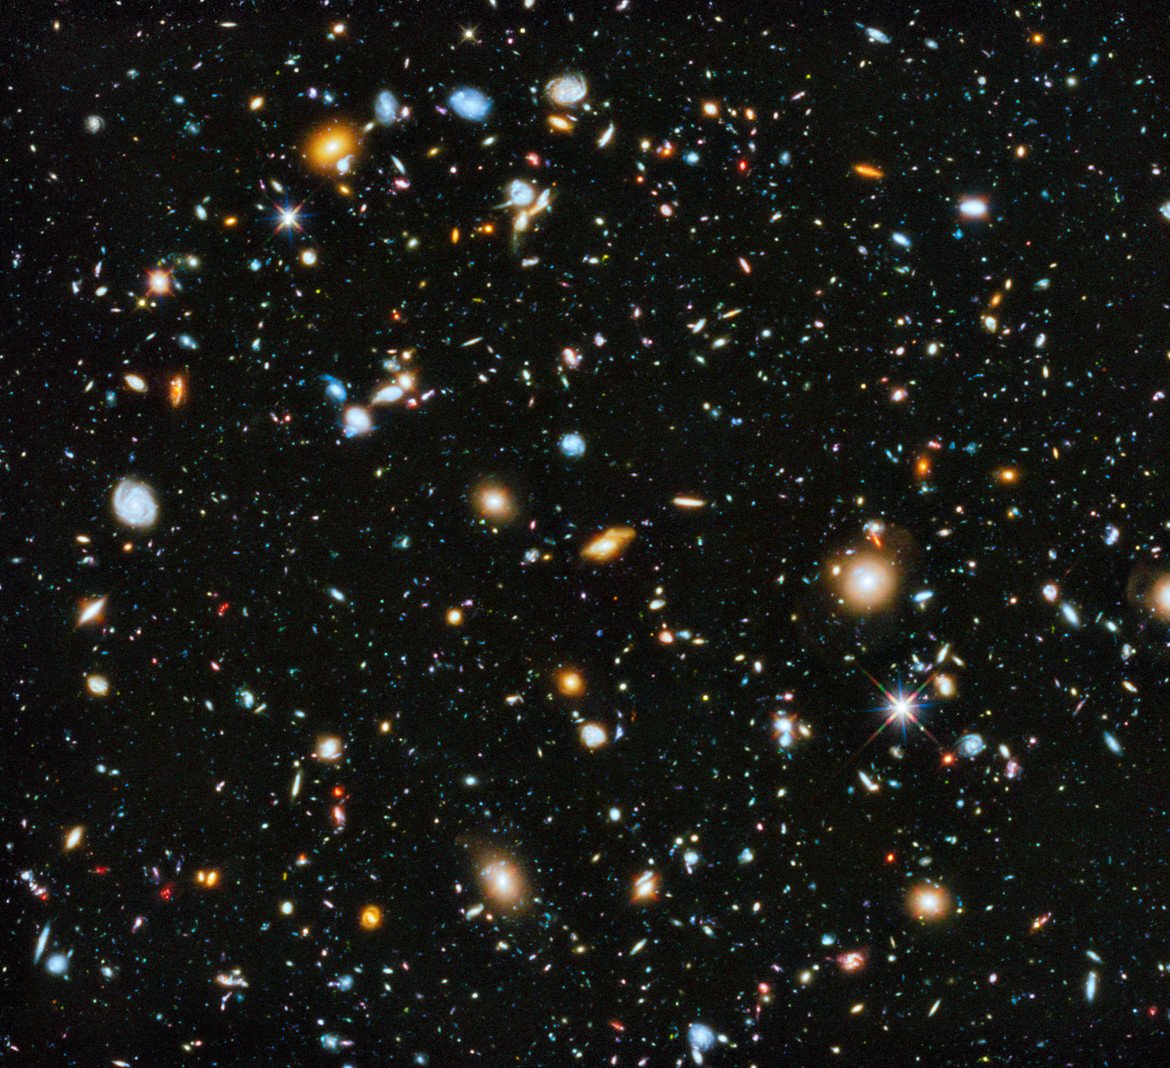 This is the Hubble Ultra Deep Field, and almost everything you see in it is a distant galaxy, billions of light years away. Credit NASA, ESA, H. Teplitz and M. Rafelski (IPAC/Caltech), A. Koekemoer (STScI), R. Windhorst (Arizona State University), and Z.